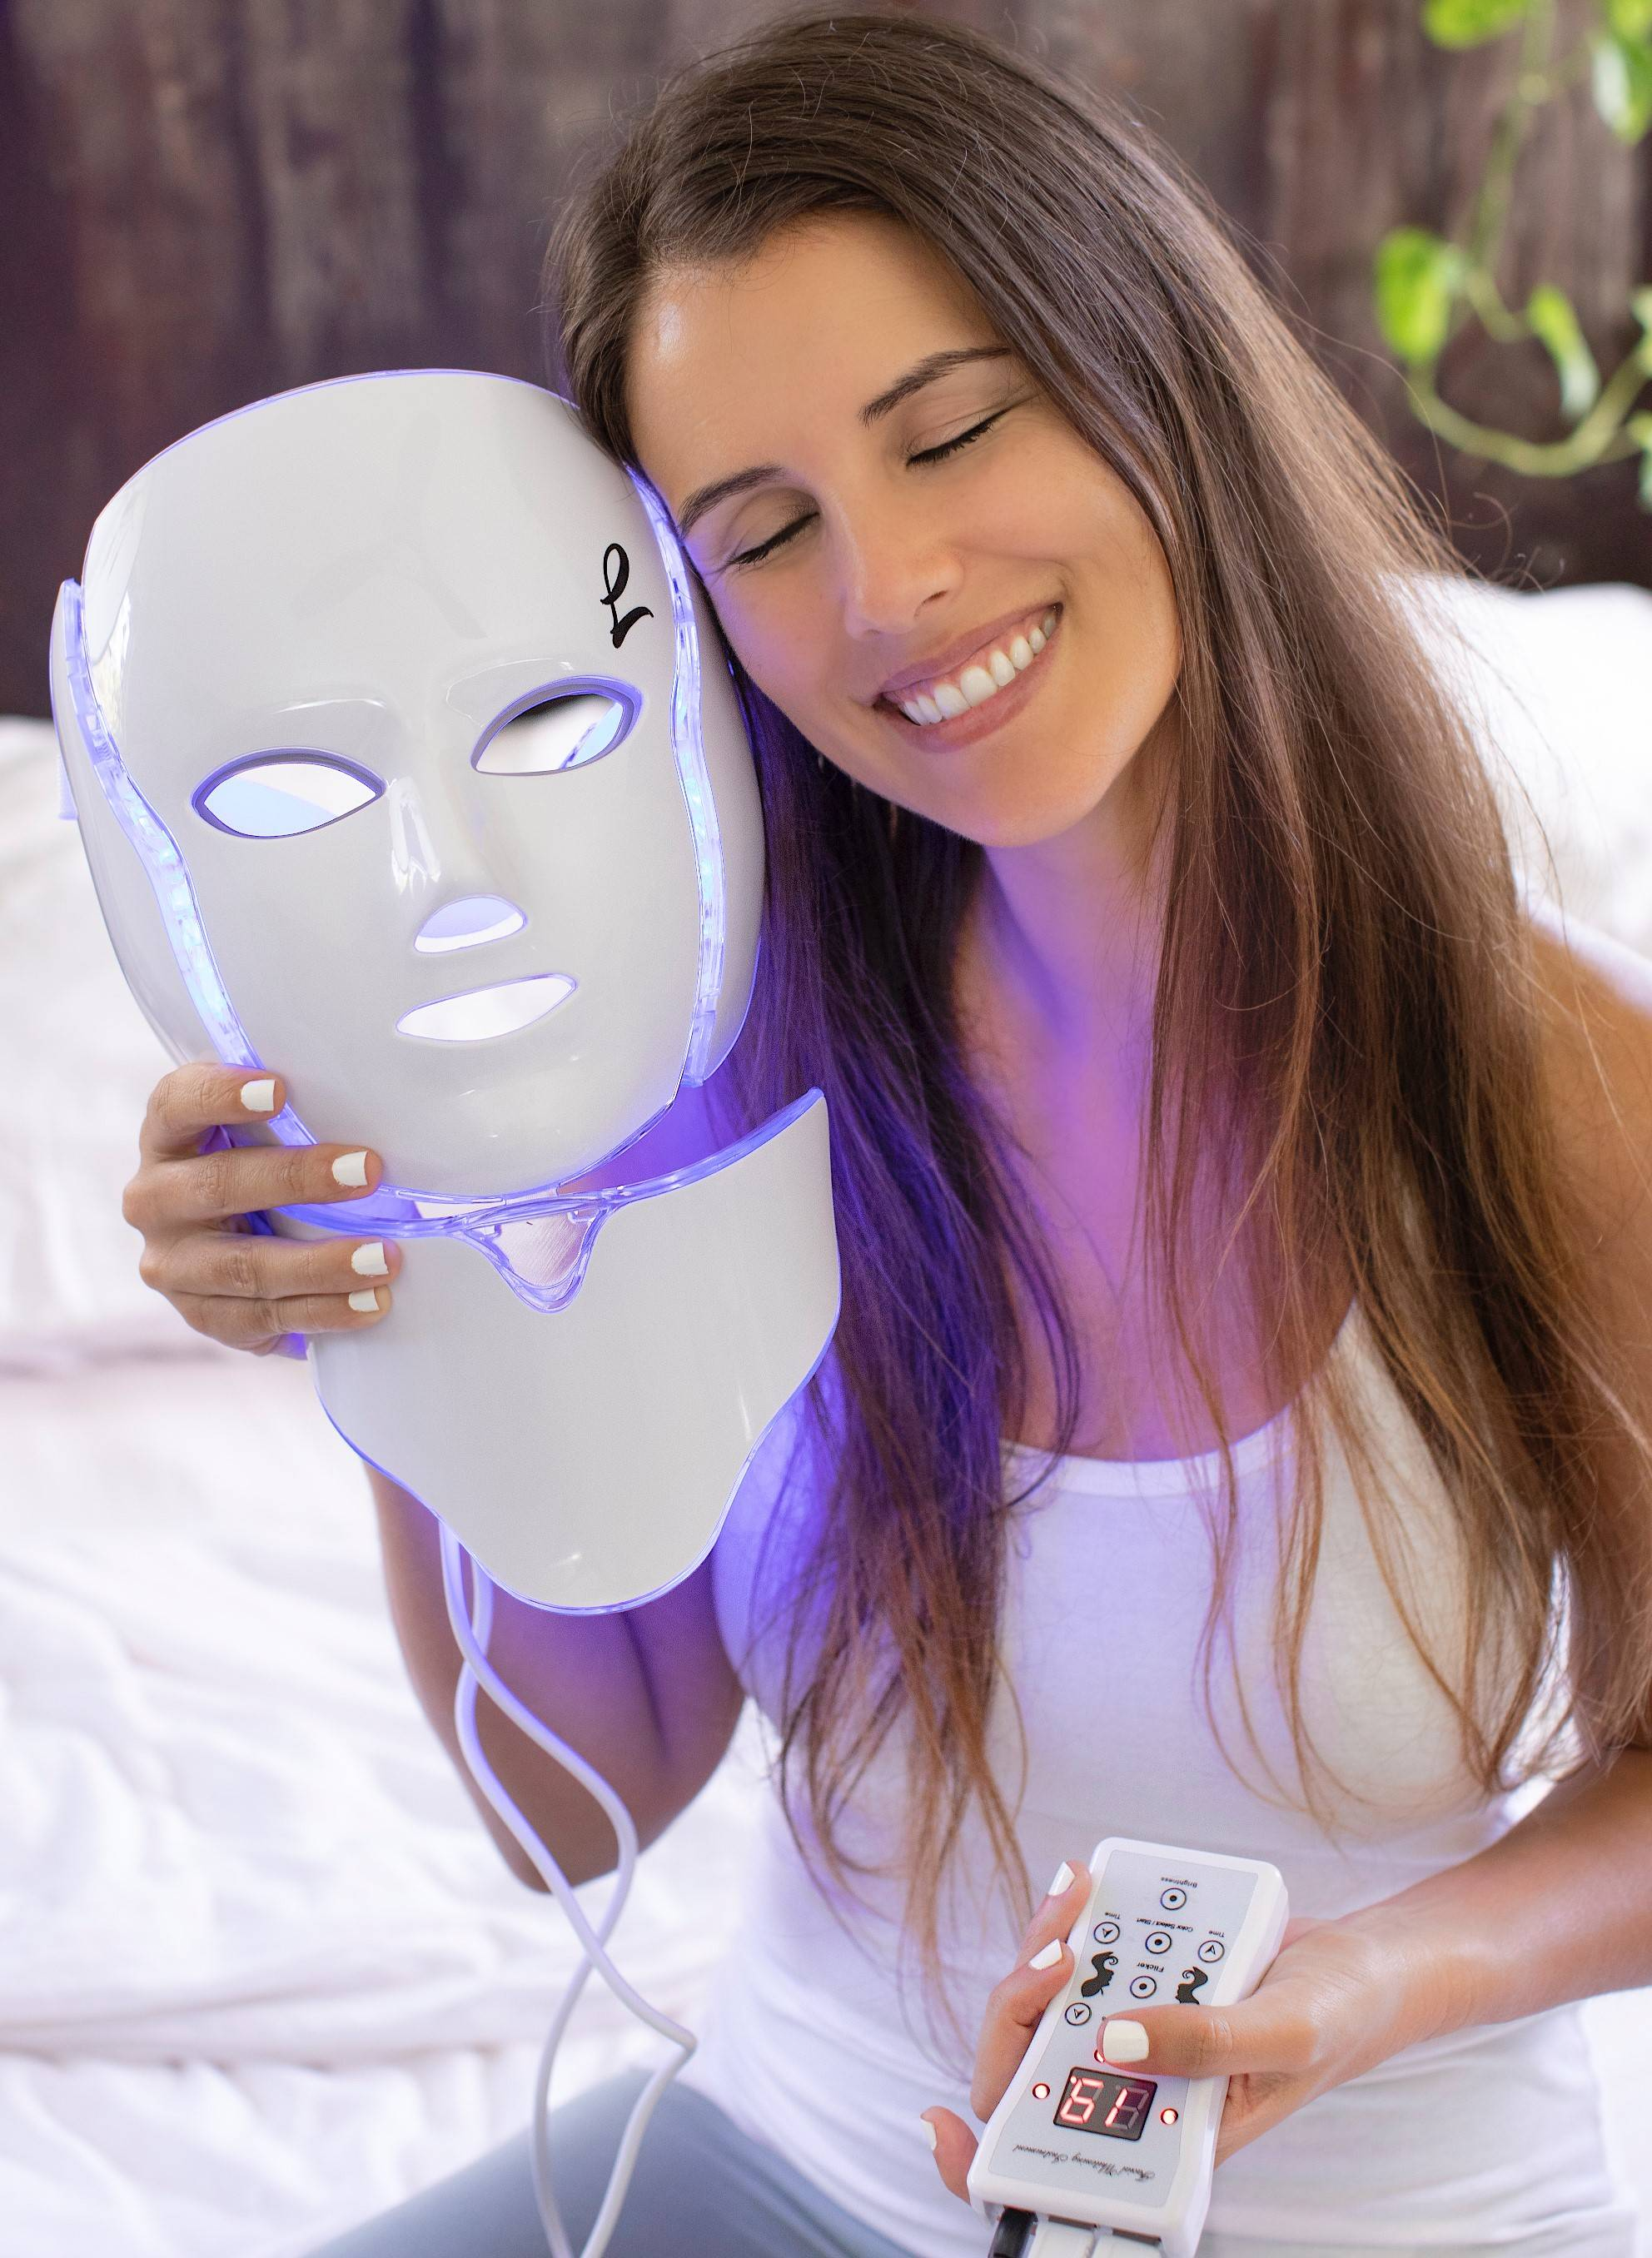 led face mask, acne light mask, light mask for face, led light therapy